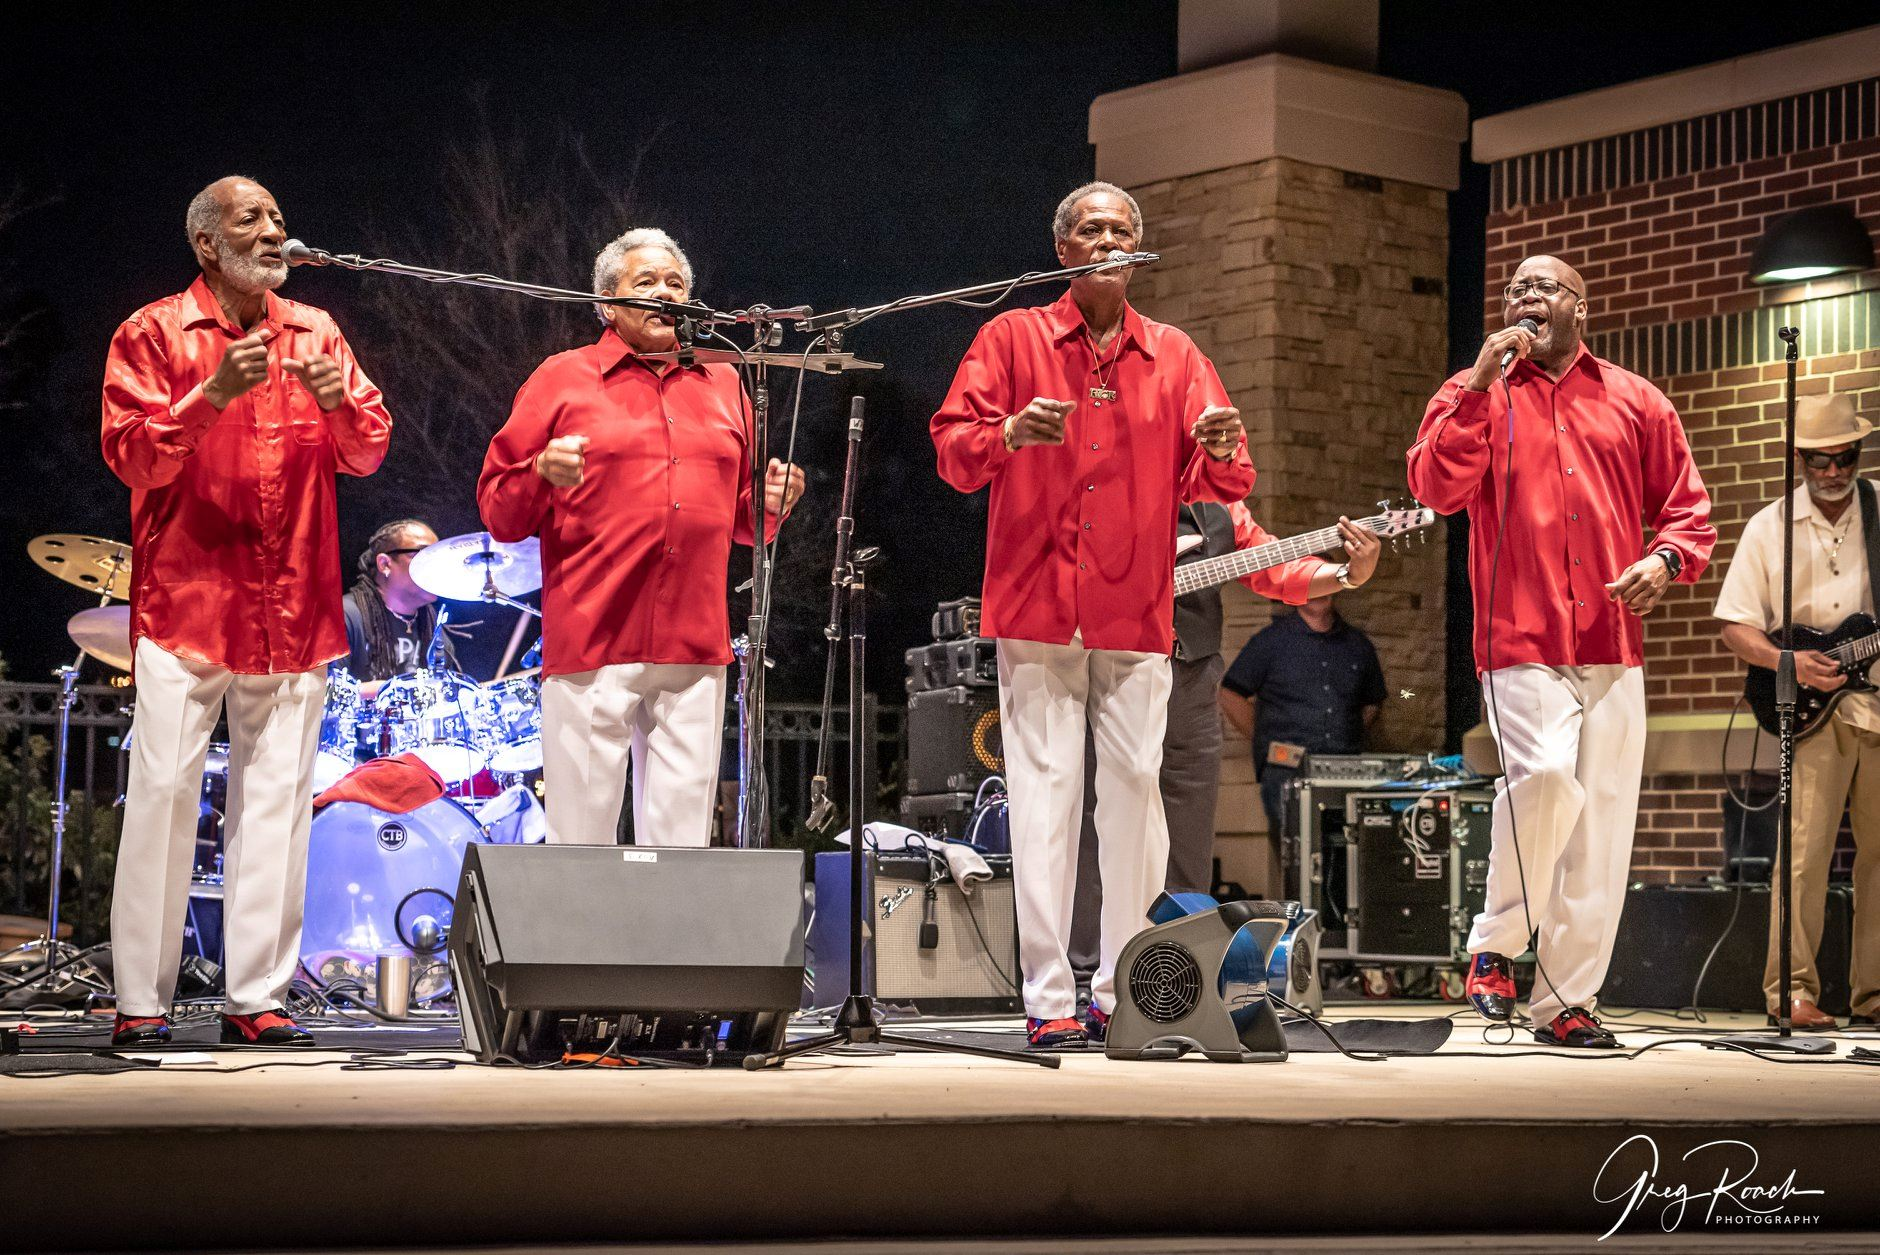 Legacy4band - 4 singers with microphones and red shirts